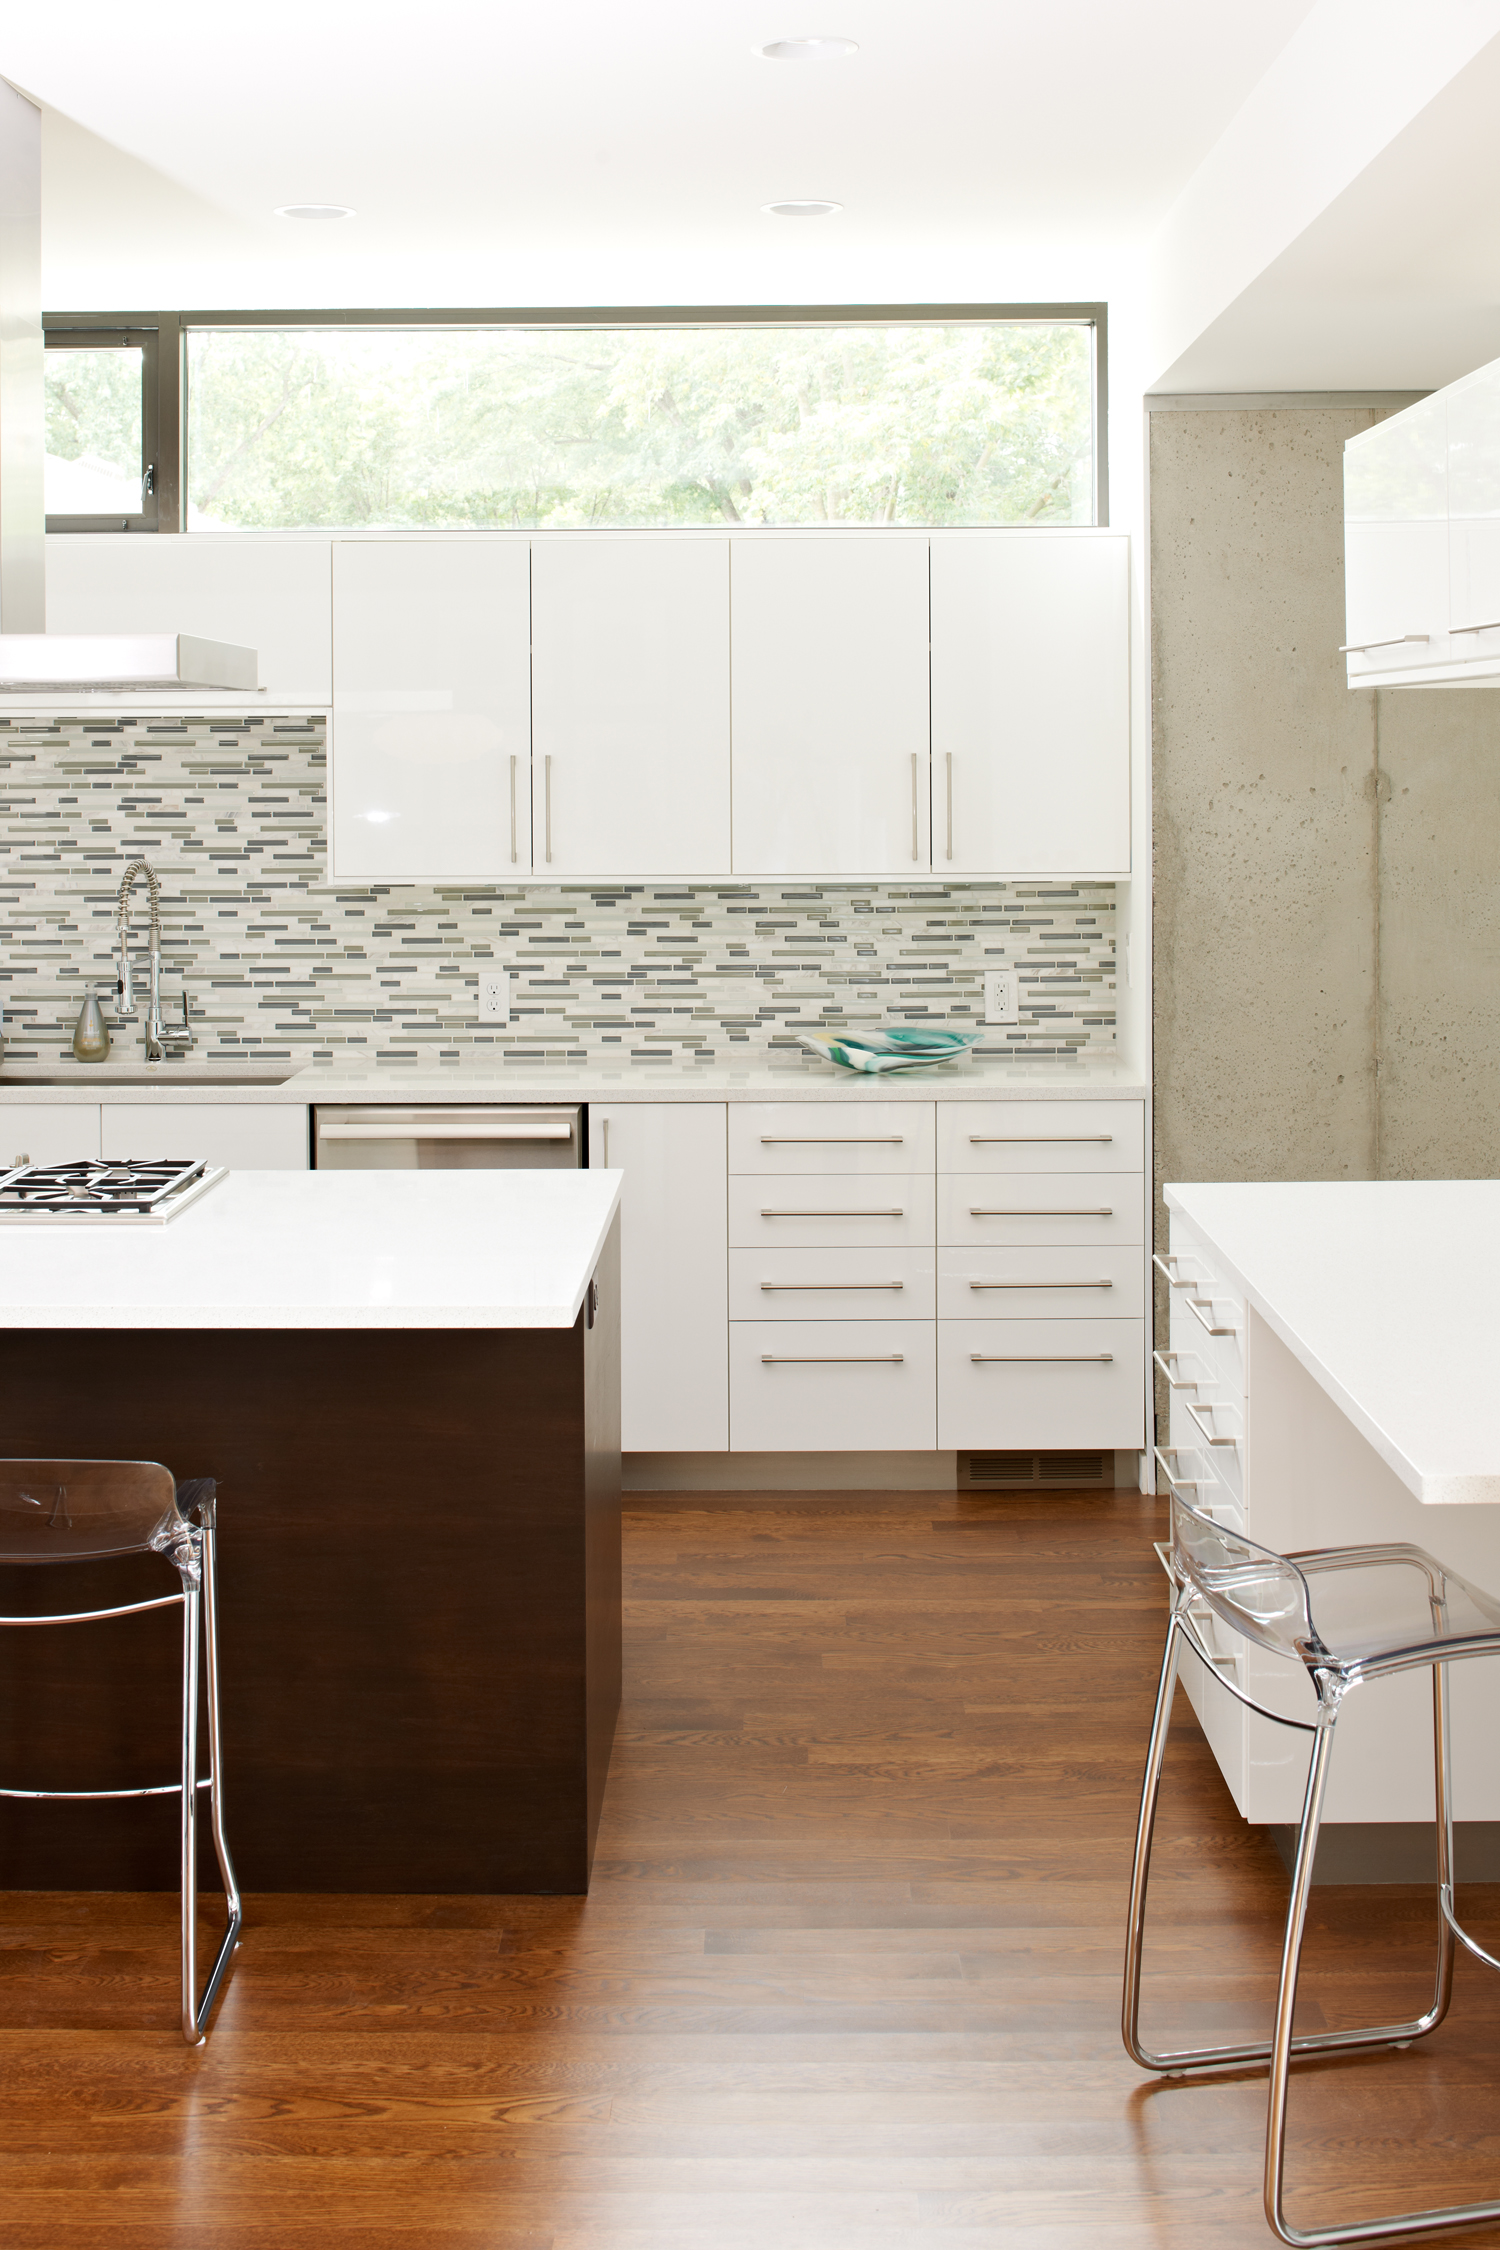 Modern kitchen with white cabinetry and grey tile backsplash